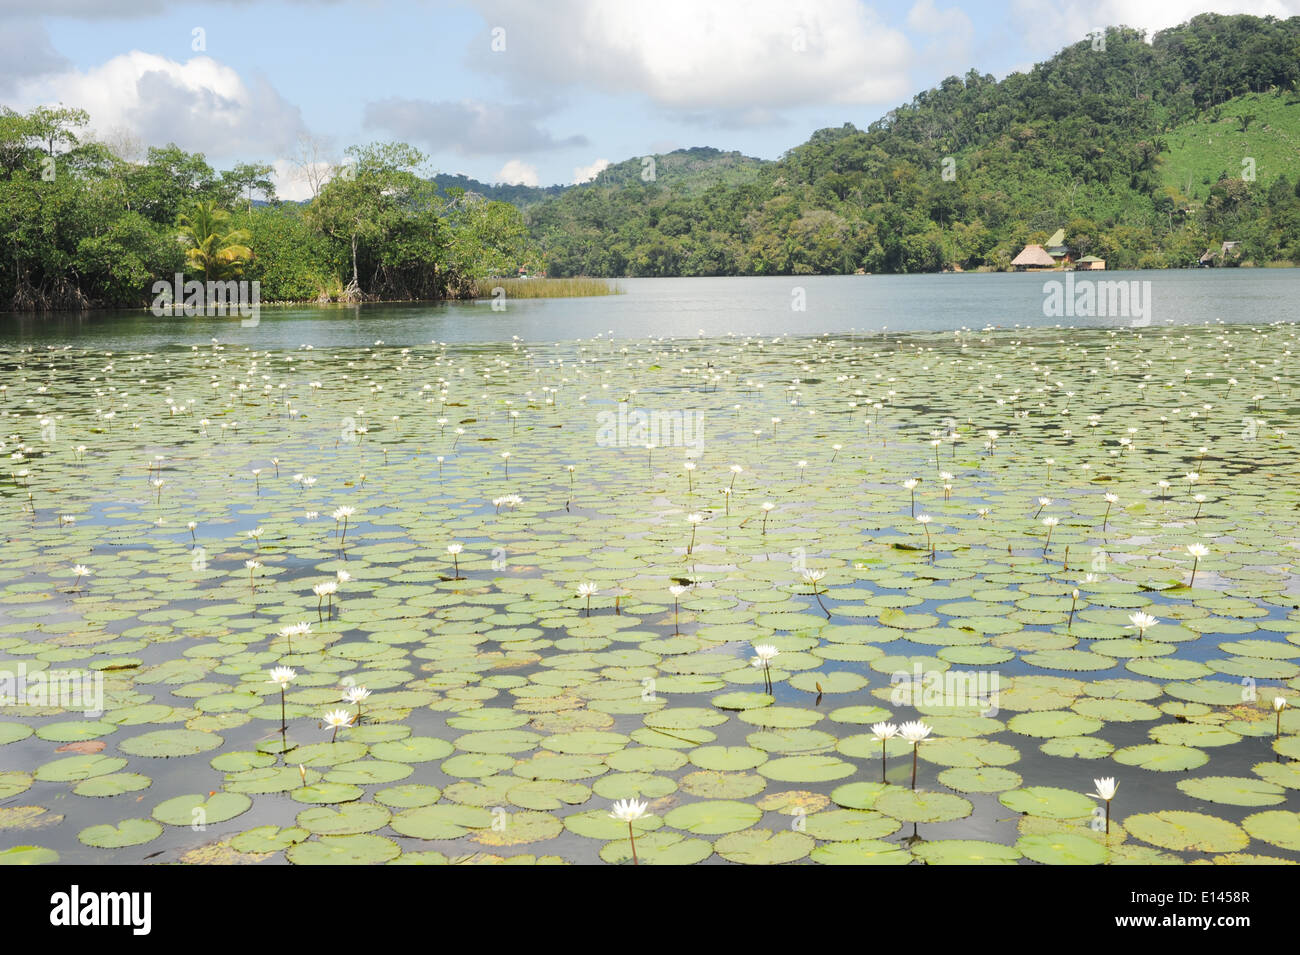 Aquatic flowers at isla de las flores on river Dulce near Livingston on Guatemala - Stock Image